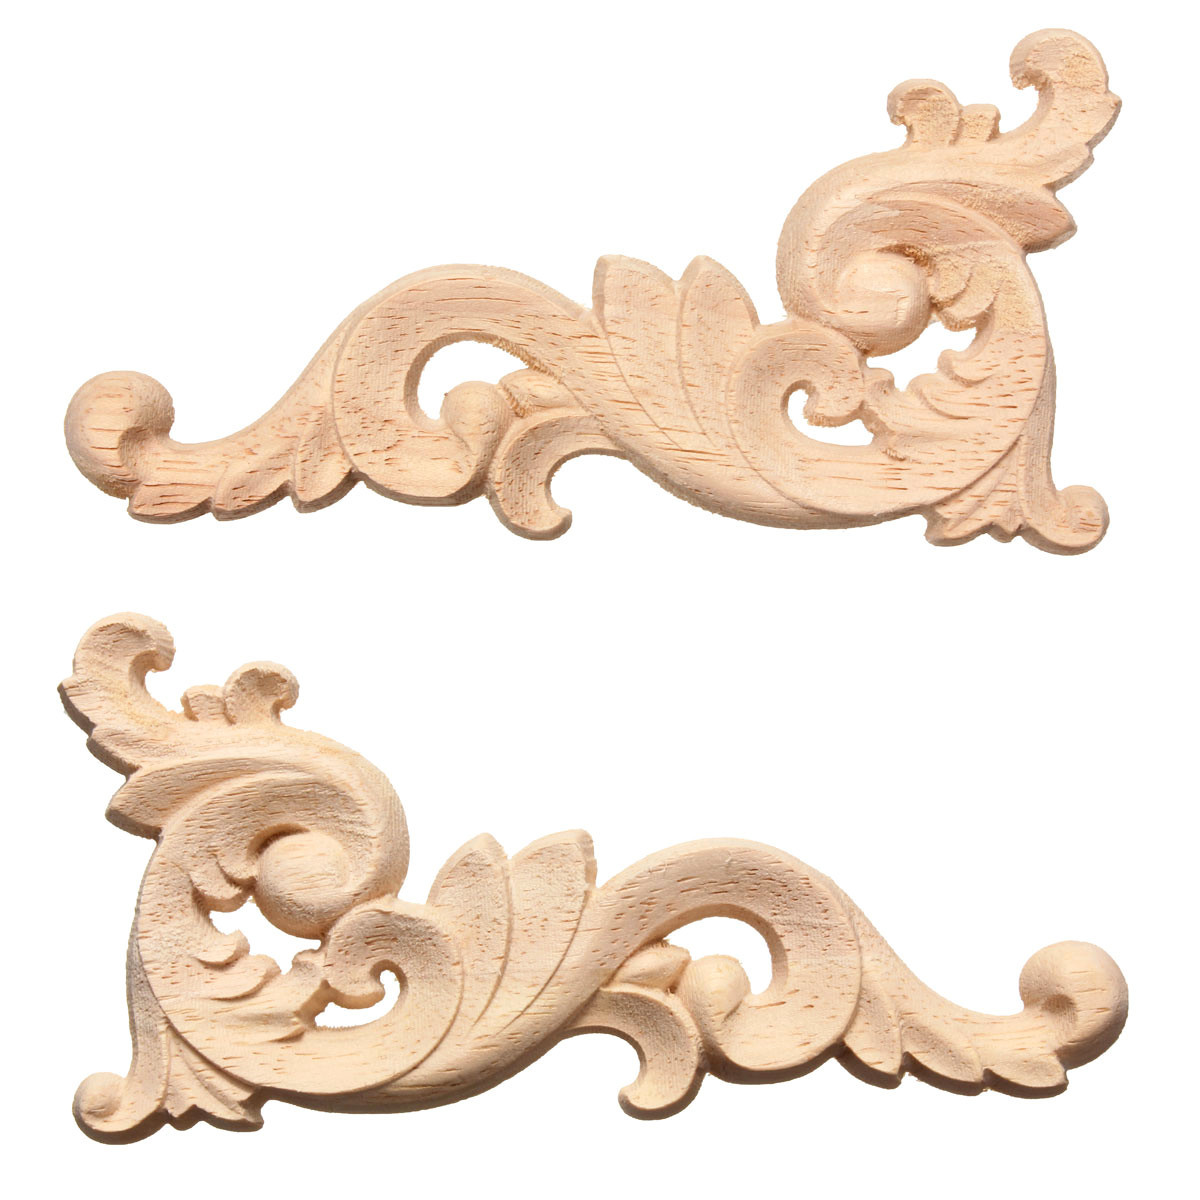 12x6cm Unpainted Wood Carved Decal Flower Corner Onlay Applique Frame Door Wall Furniture Decor New